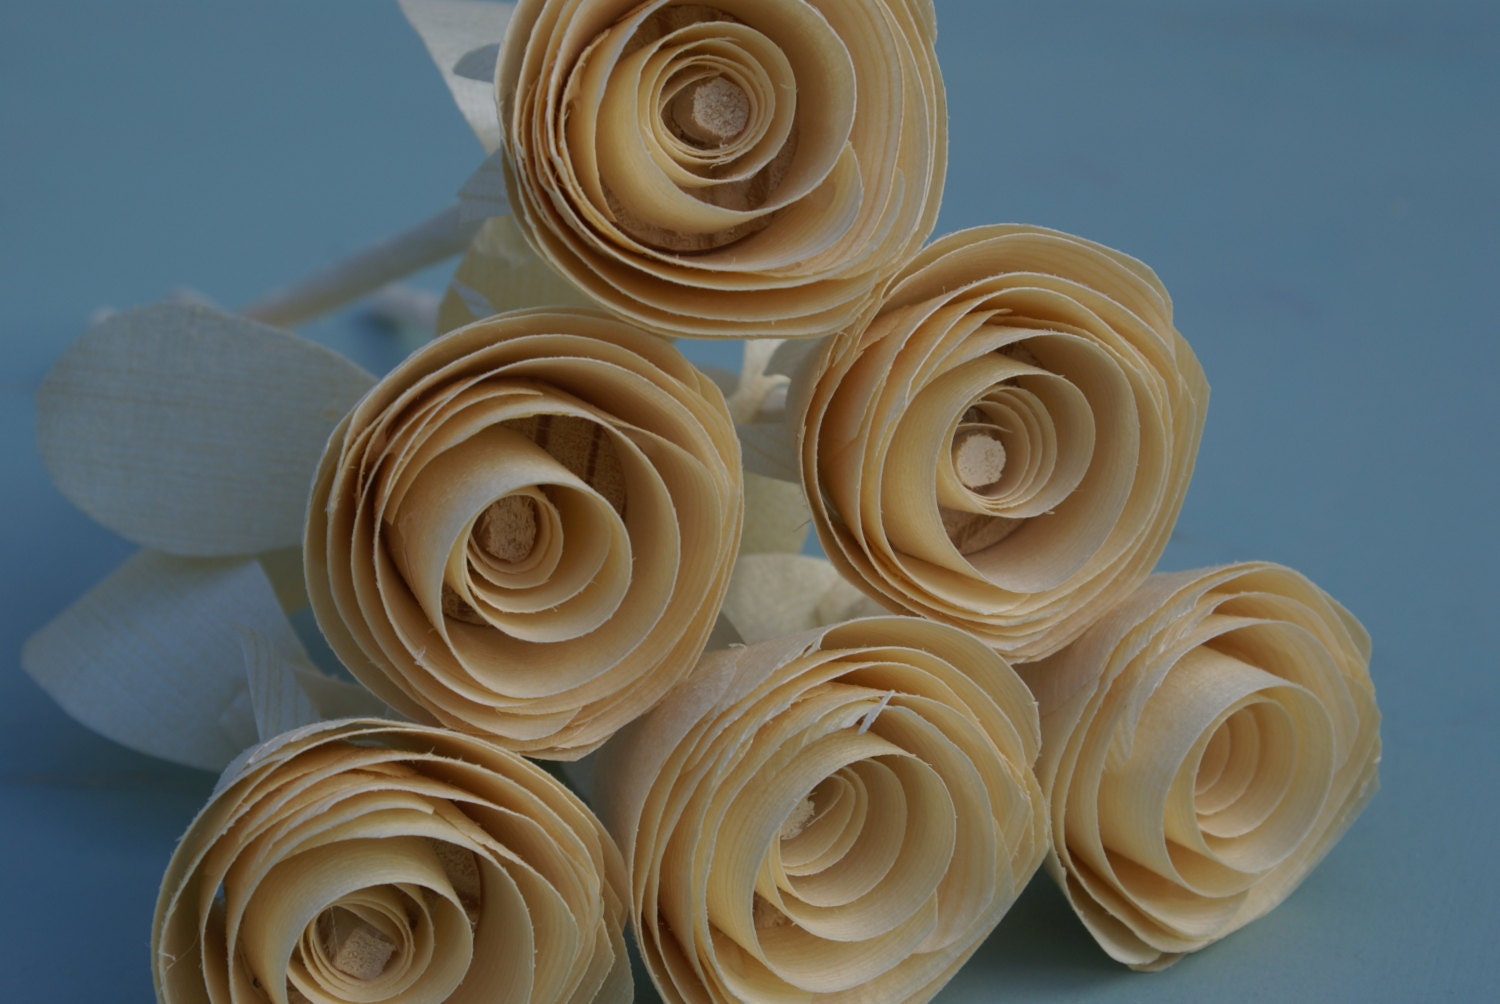 wooden roses 5 year anniversary